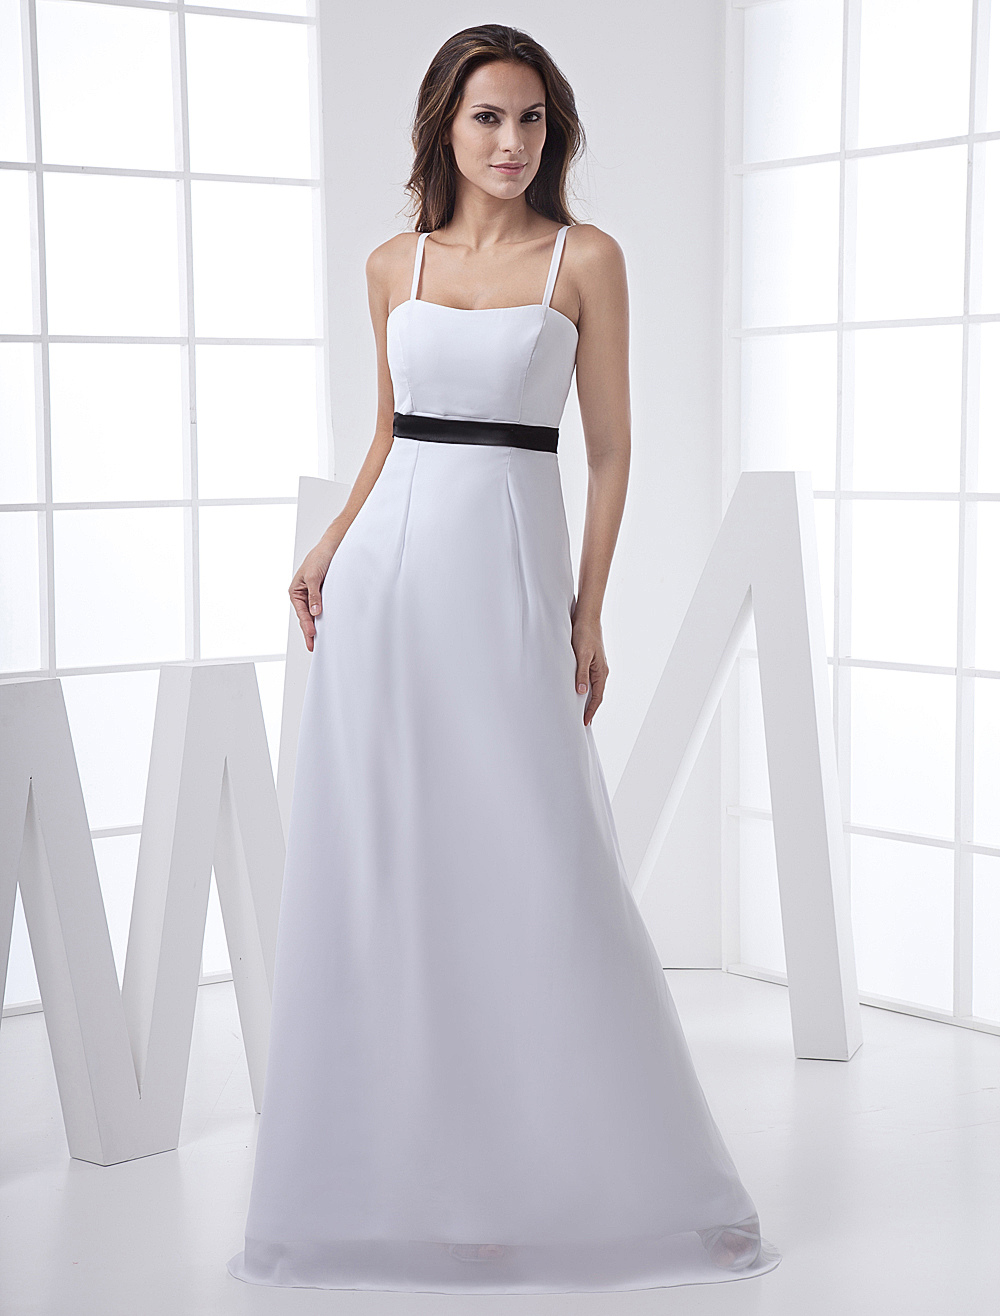 Sheath White Sash Satin Bridesmaid Dress